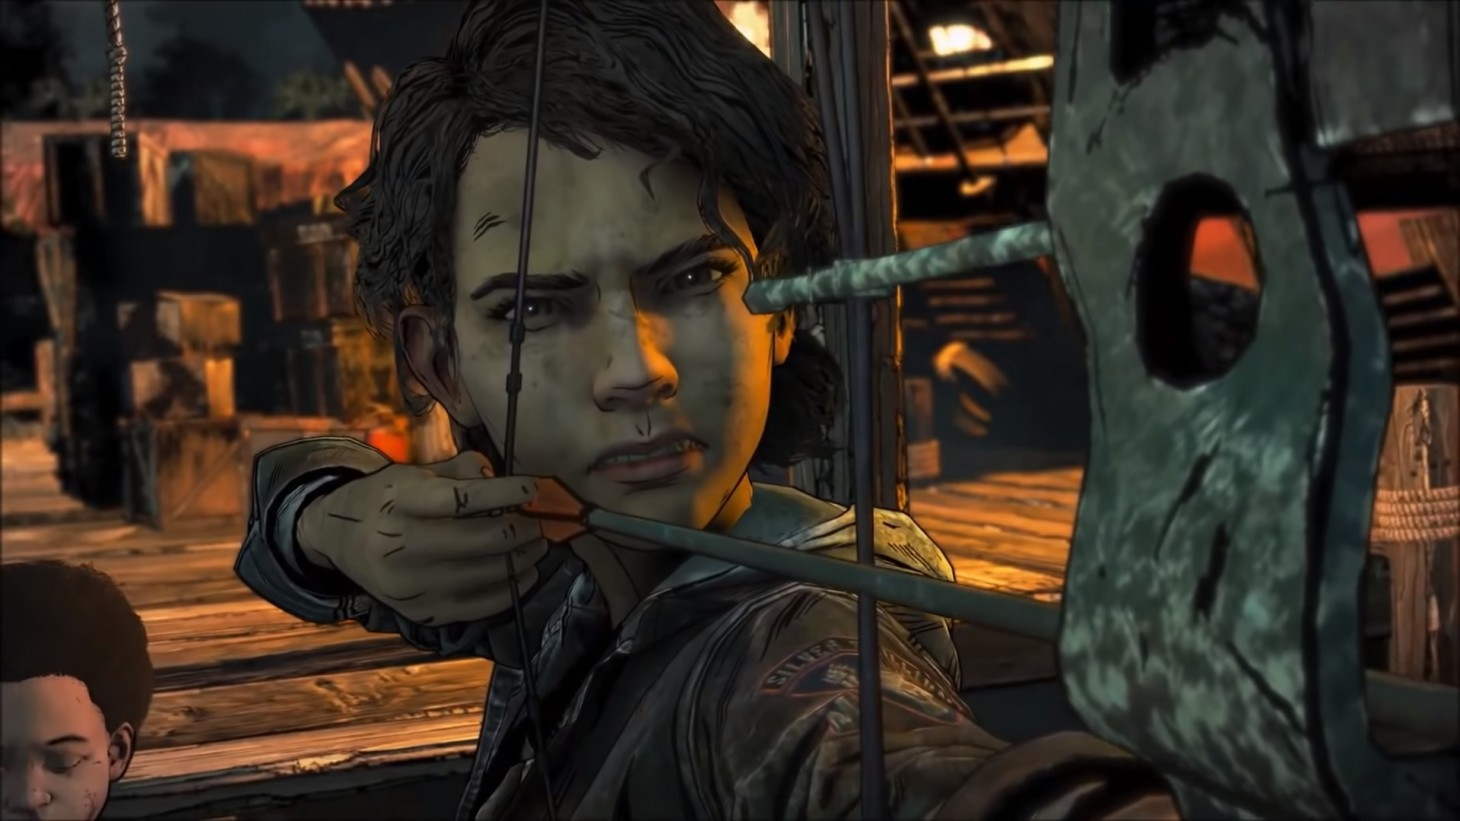 We Rank The 10 Hardest Choices In The Walking Dead Series